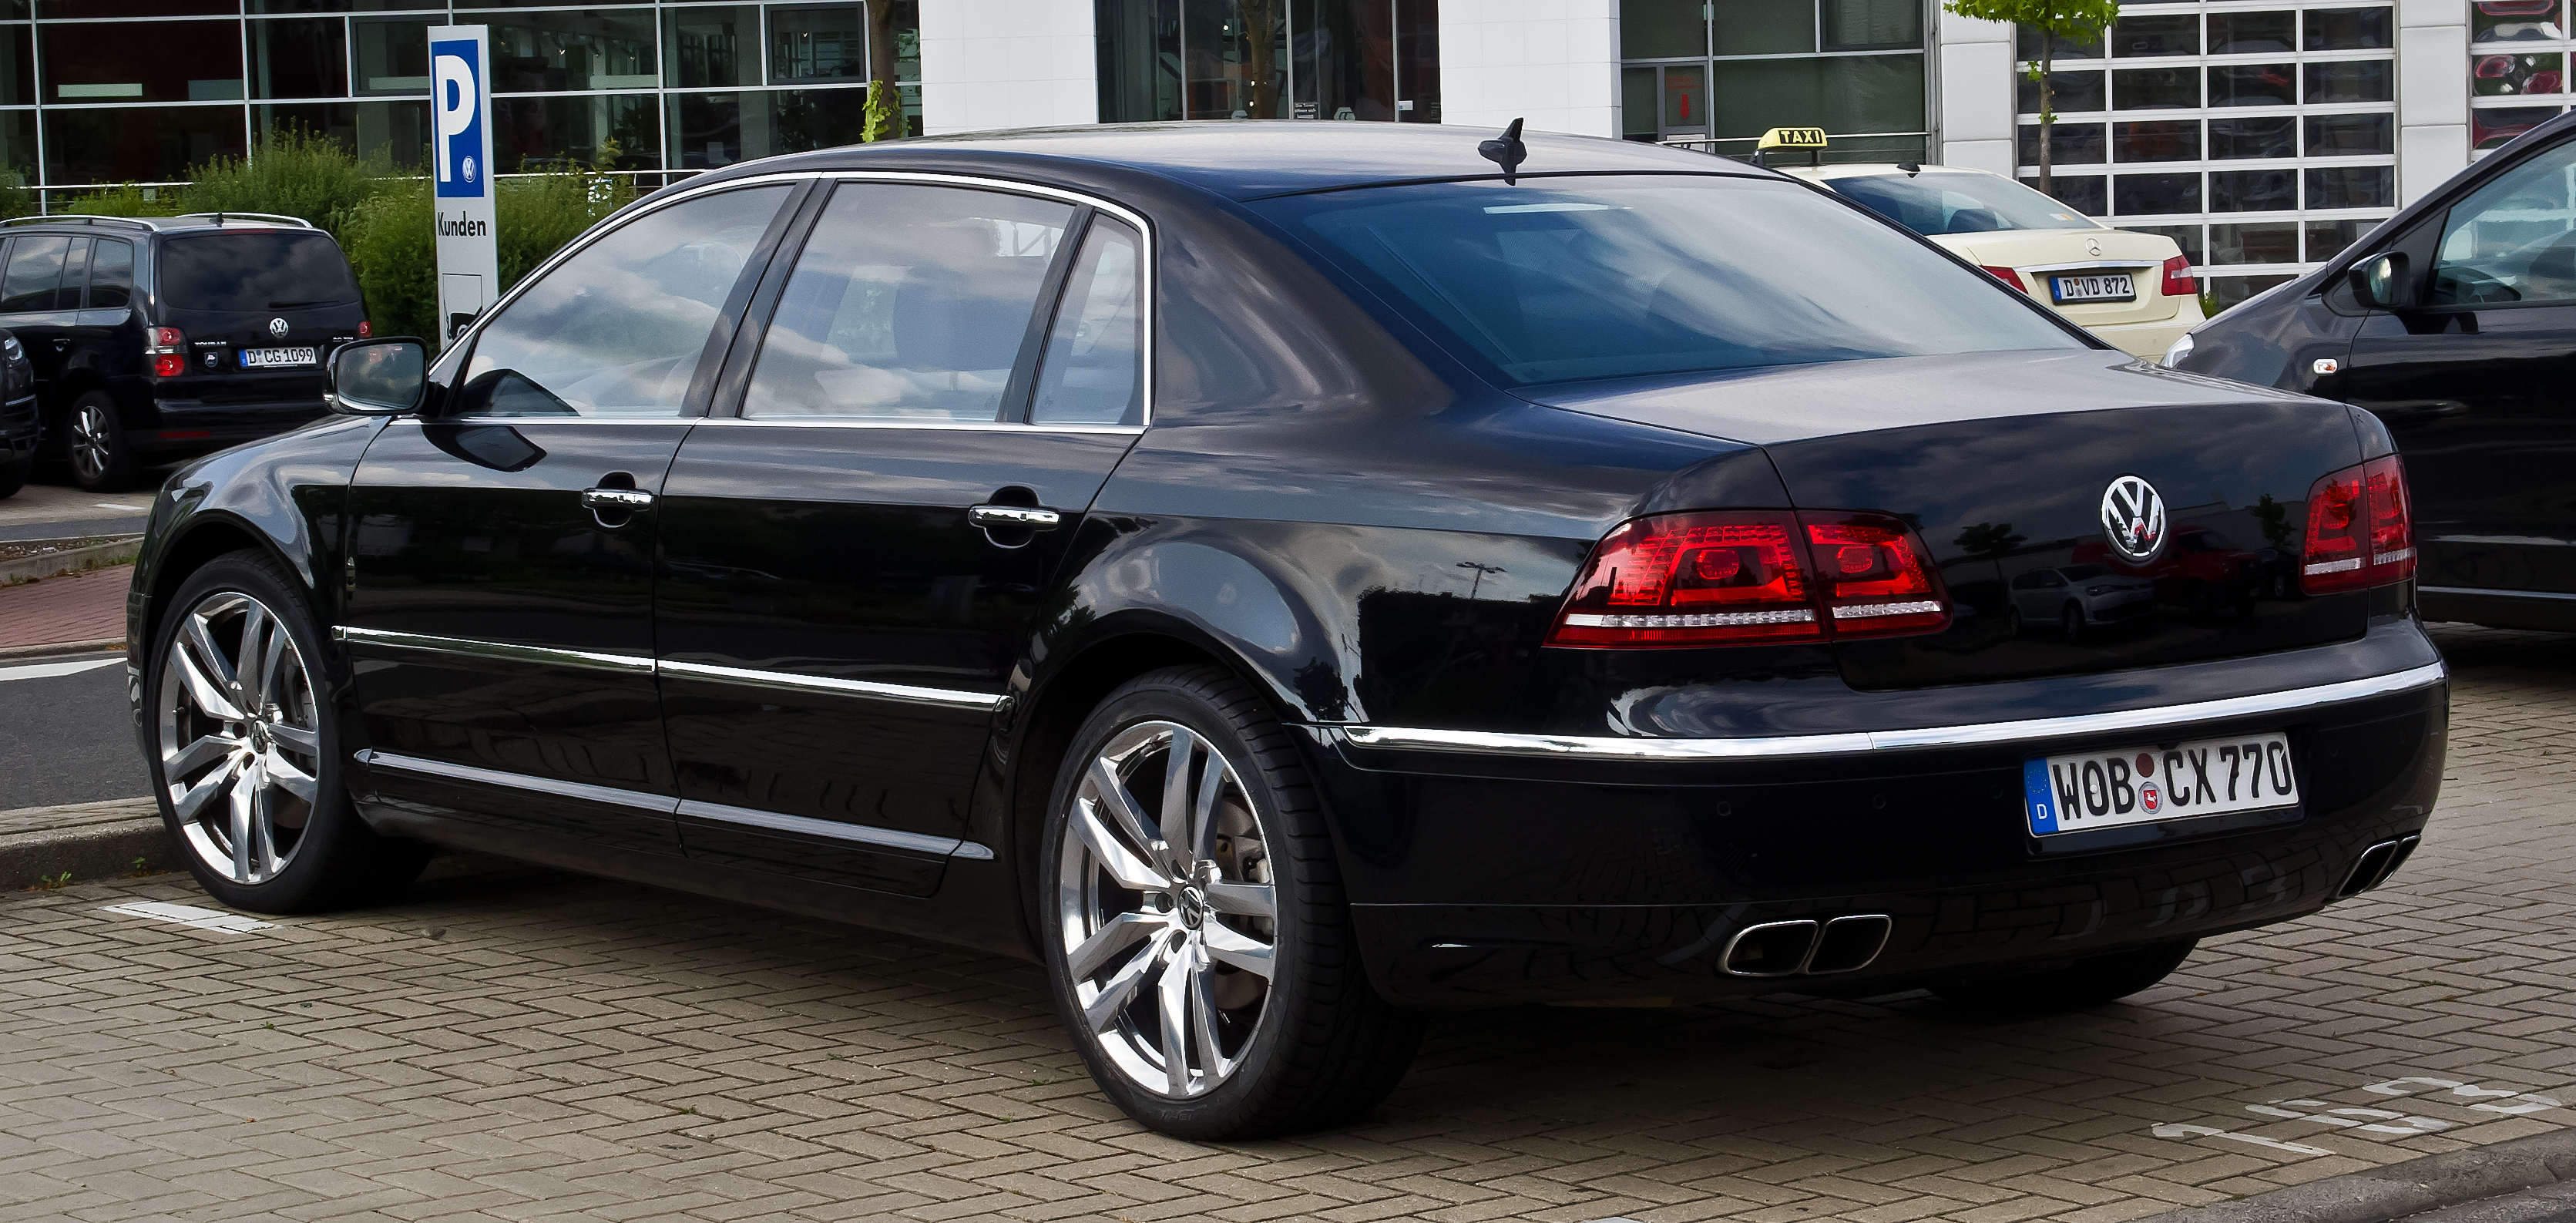 file vw phaeton l 6 0 w12 4motion 2 facelift. Black Bedroom Furniture Sets. Home Design Ideas